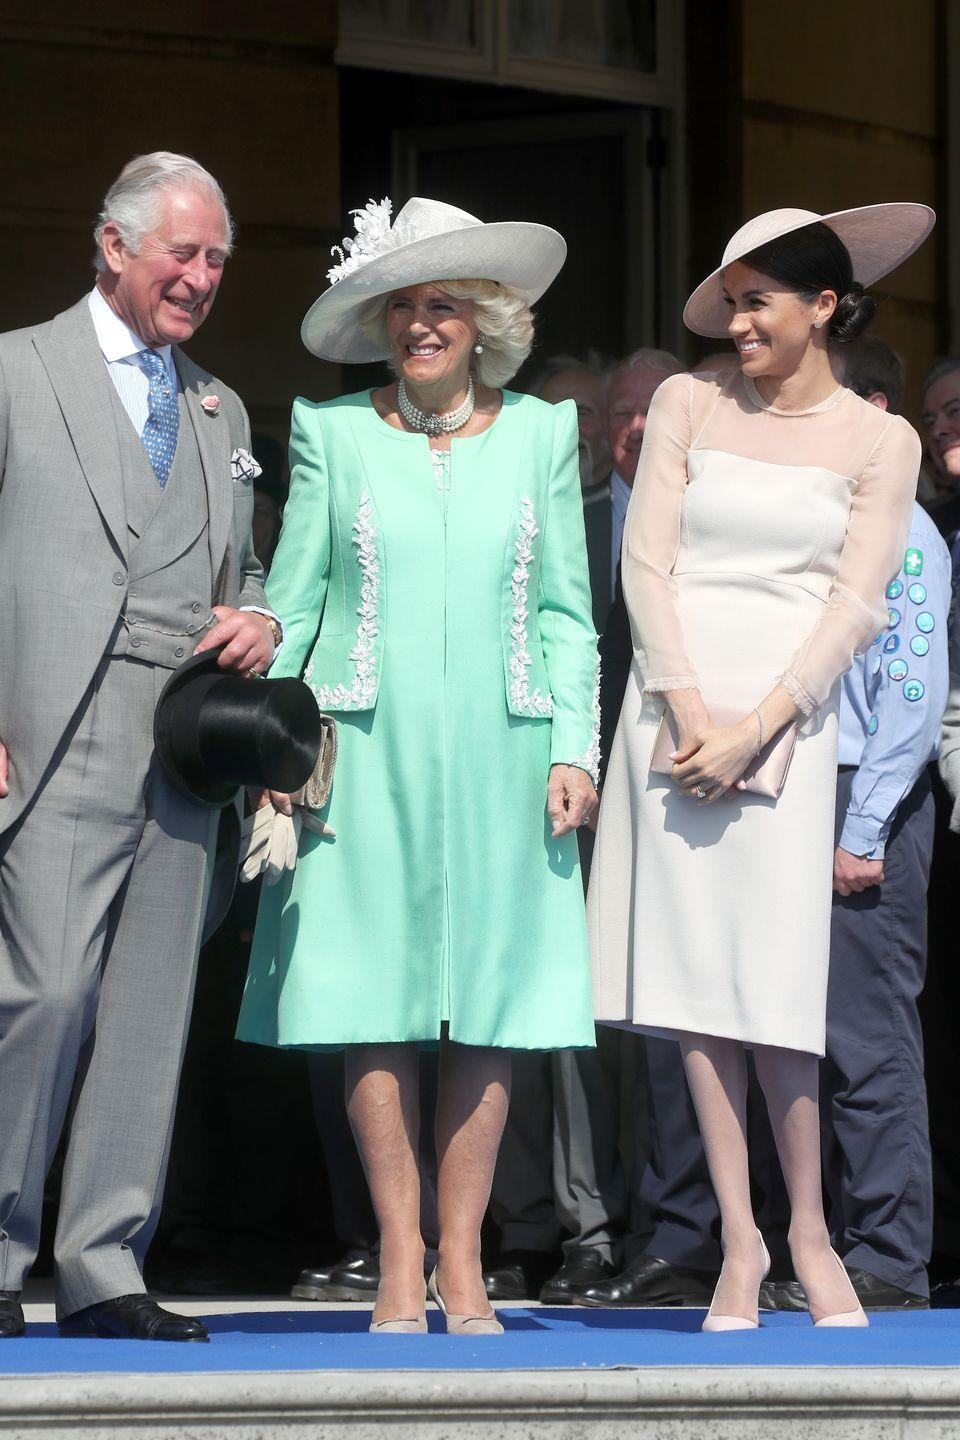 """<p>Camilla Parker Bowles wore a mint green ensemble and simple white hat to celebrate Prince Charles's various patronages for his 70th birthday in the <a href=""""https://www.townandcountrymag.com/society/tradition/g20871373/meghan-markle-prince-harry-first-post-royal-wedding-appearance-garden-party-photos/"""" rel=""""nofollow noopener"""" target=""""_blank"""" data-ylk=""""slk:Gardens of Buckingham Palace."""" class=""""link rapid-noclick-resp"""">Gardens of Buckingham Palace.</a></p>"""